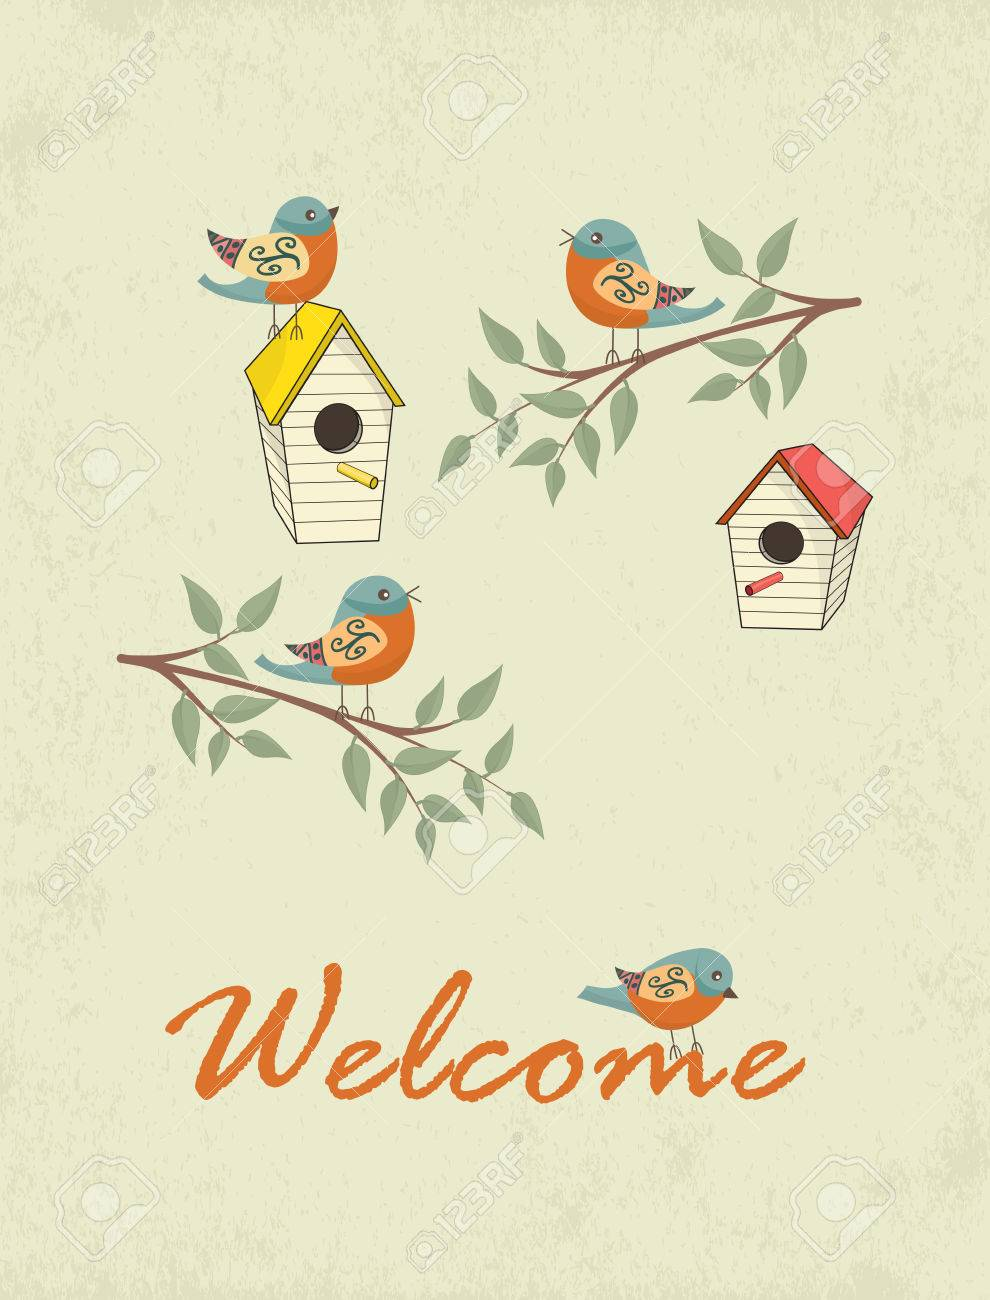 decorative hand drawn card with bird house and welcome sign